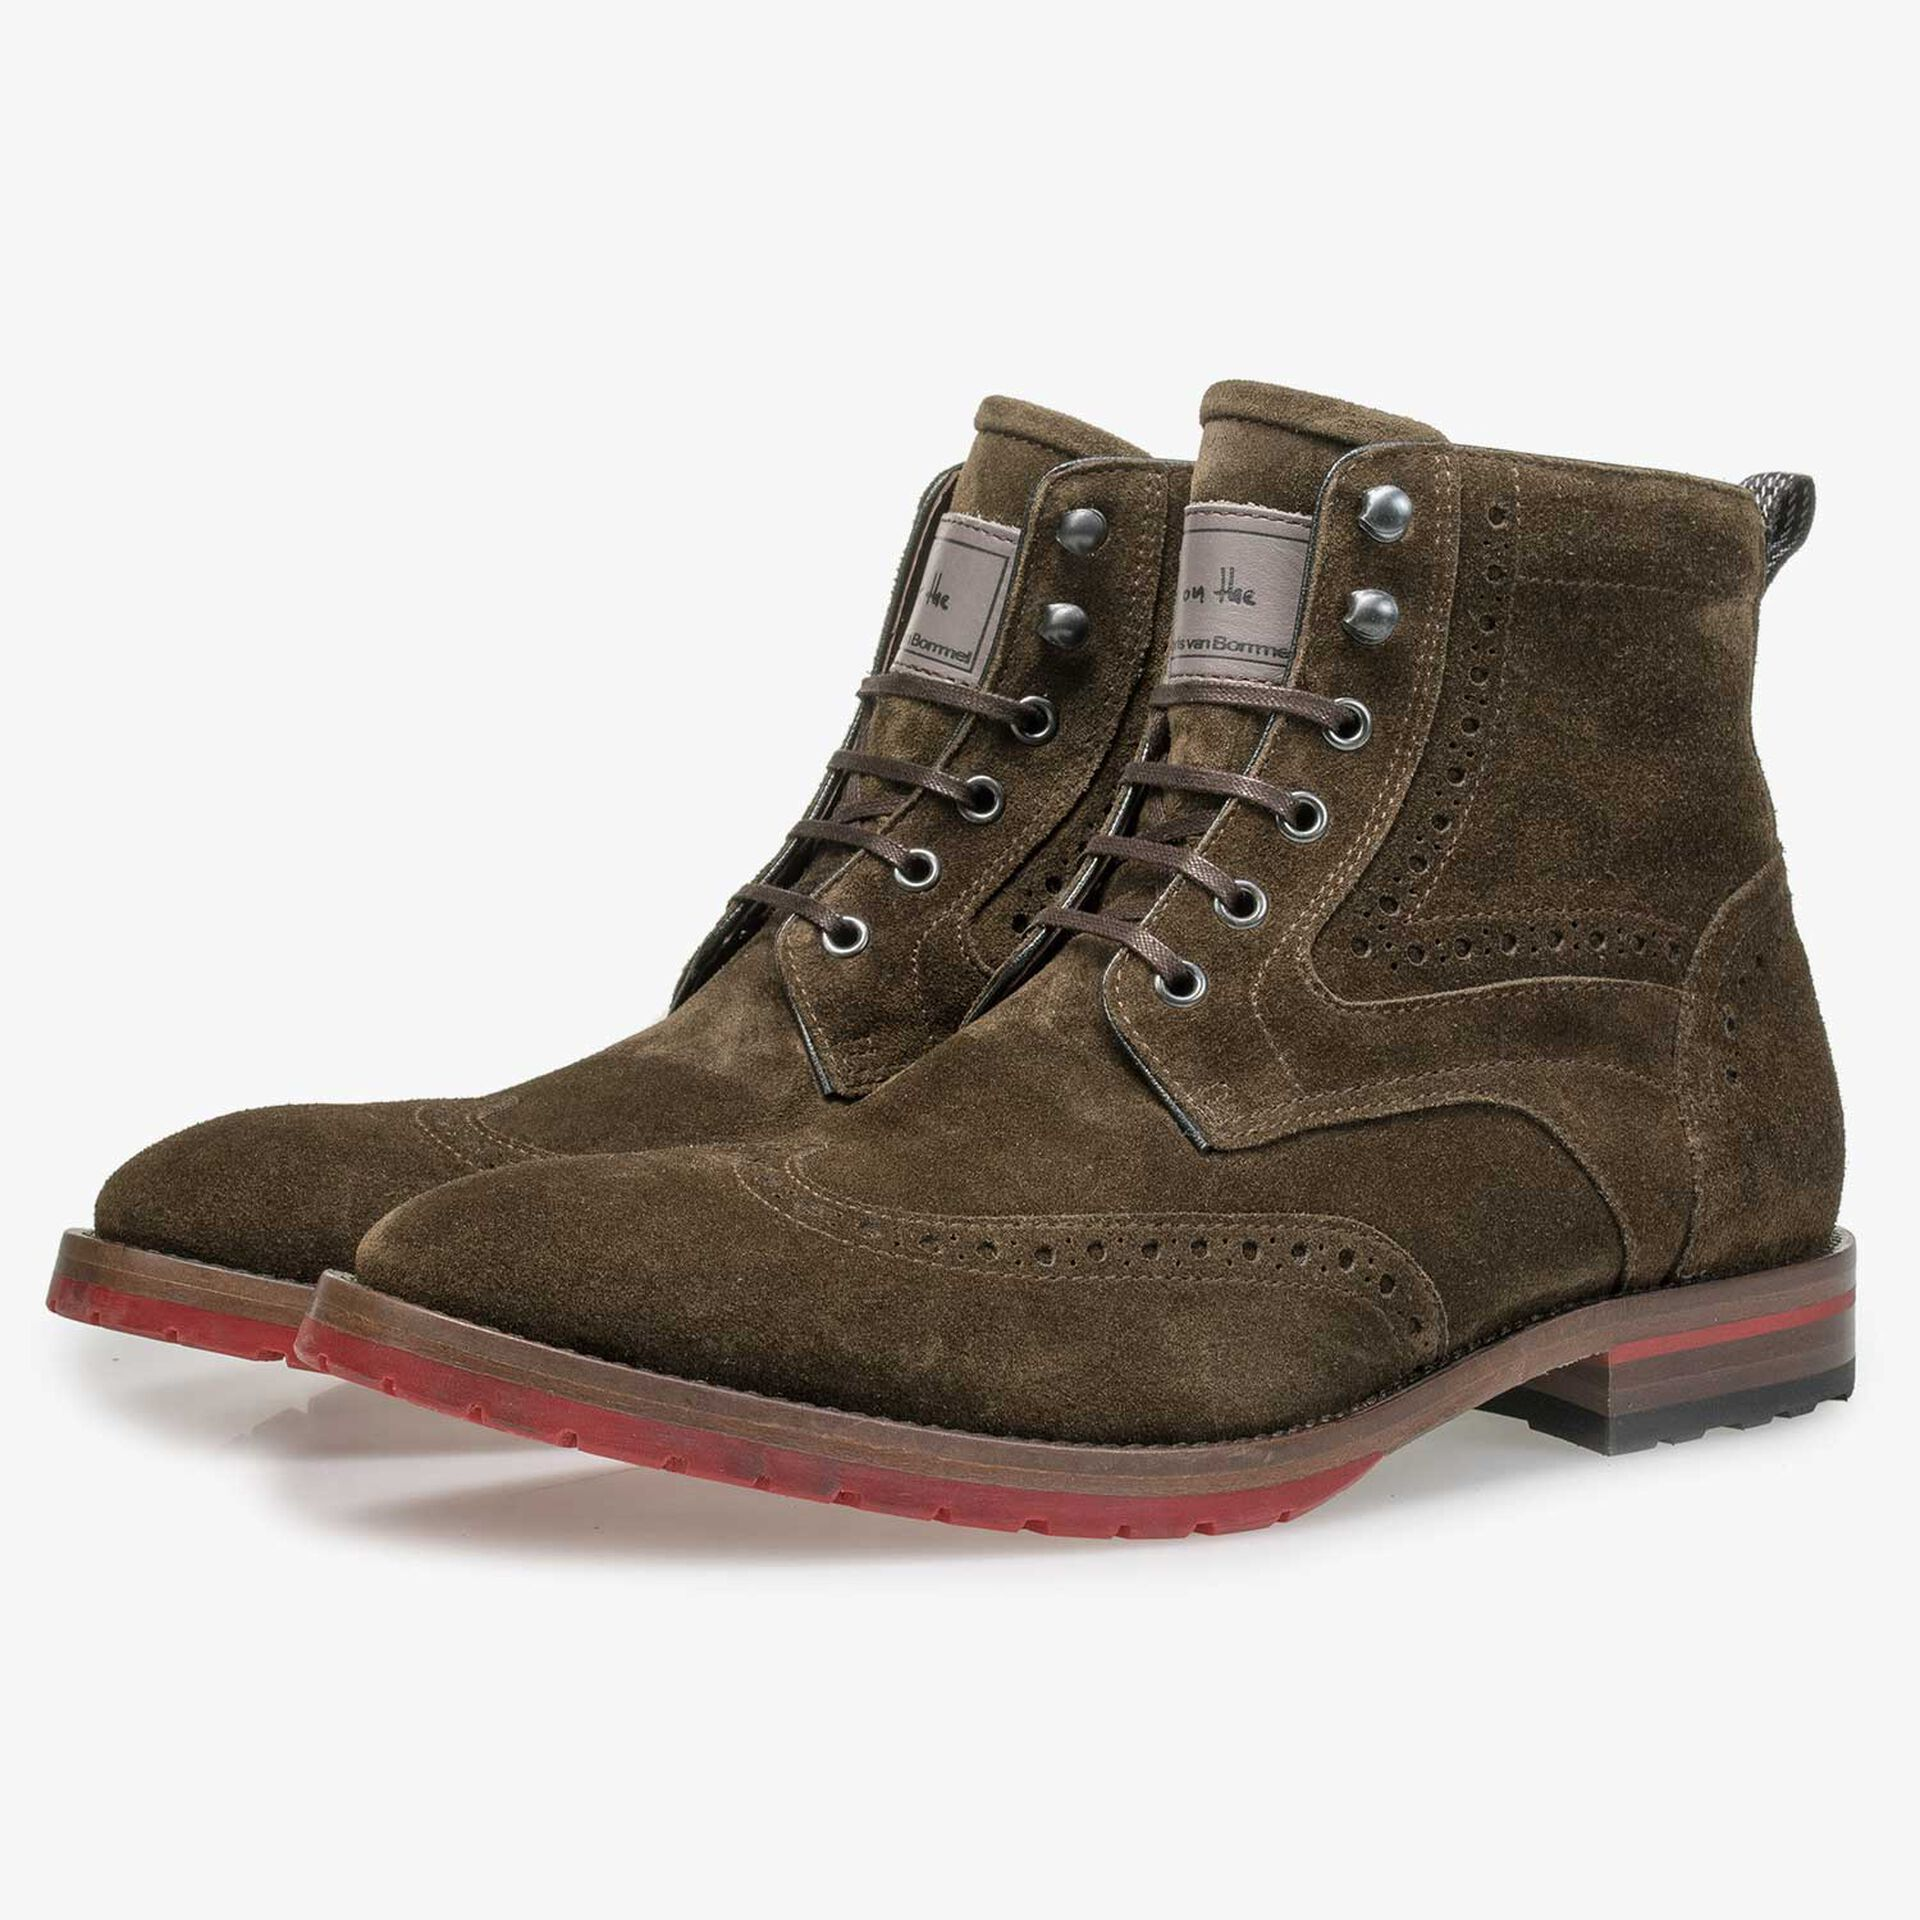 Olive green calf suede leather brogue lace boot